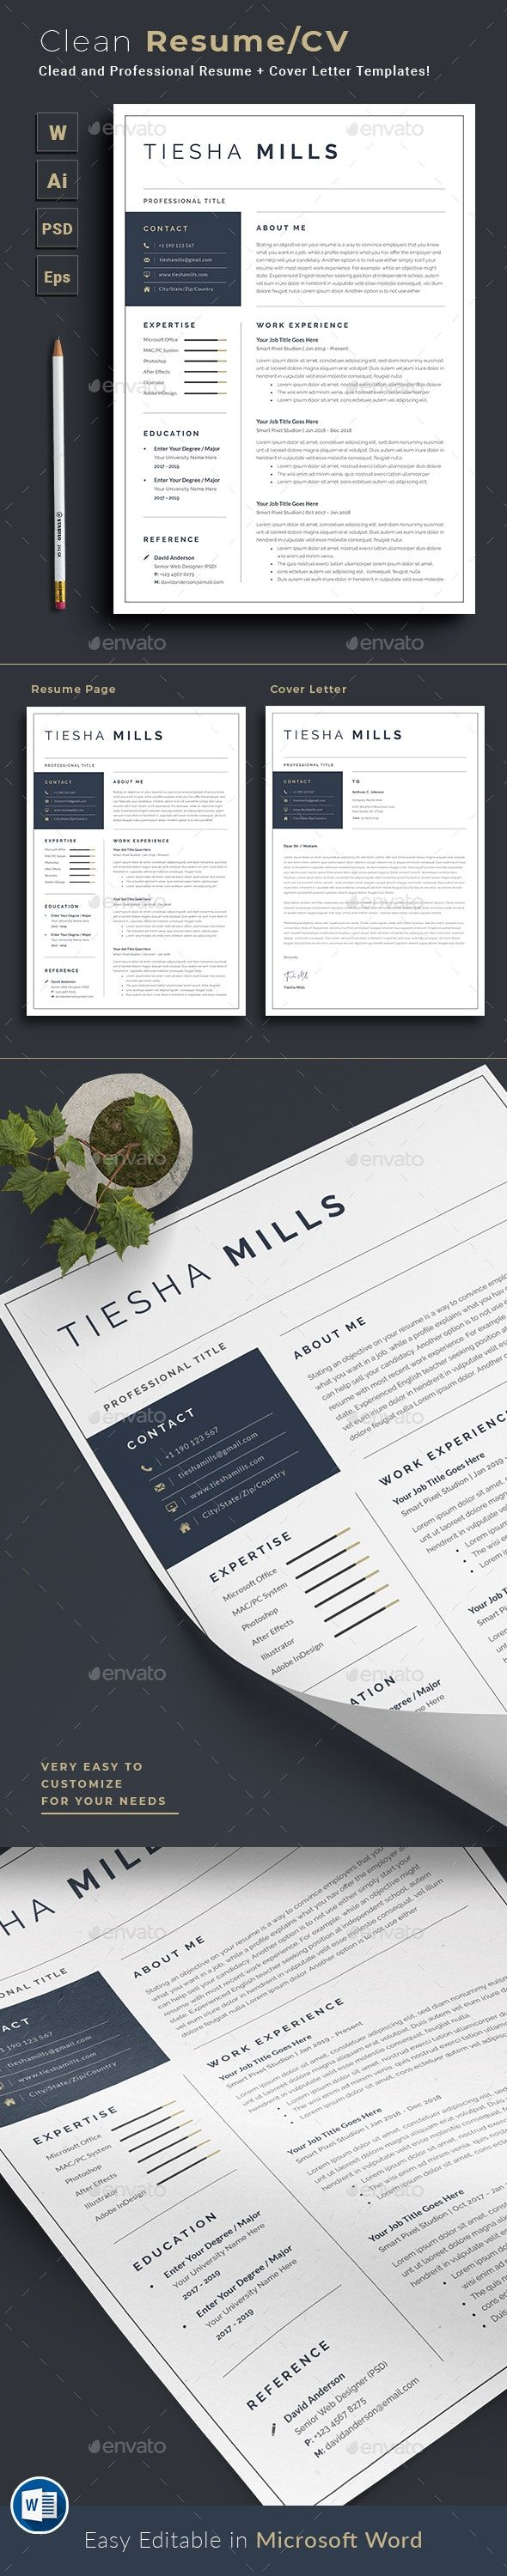 Resume Infographic Resume Clean Resume Template Resume Words